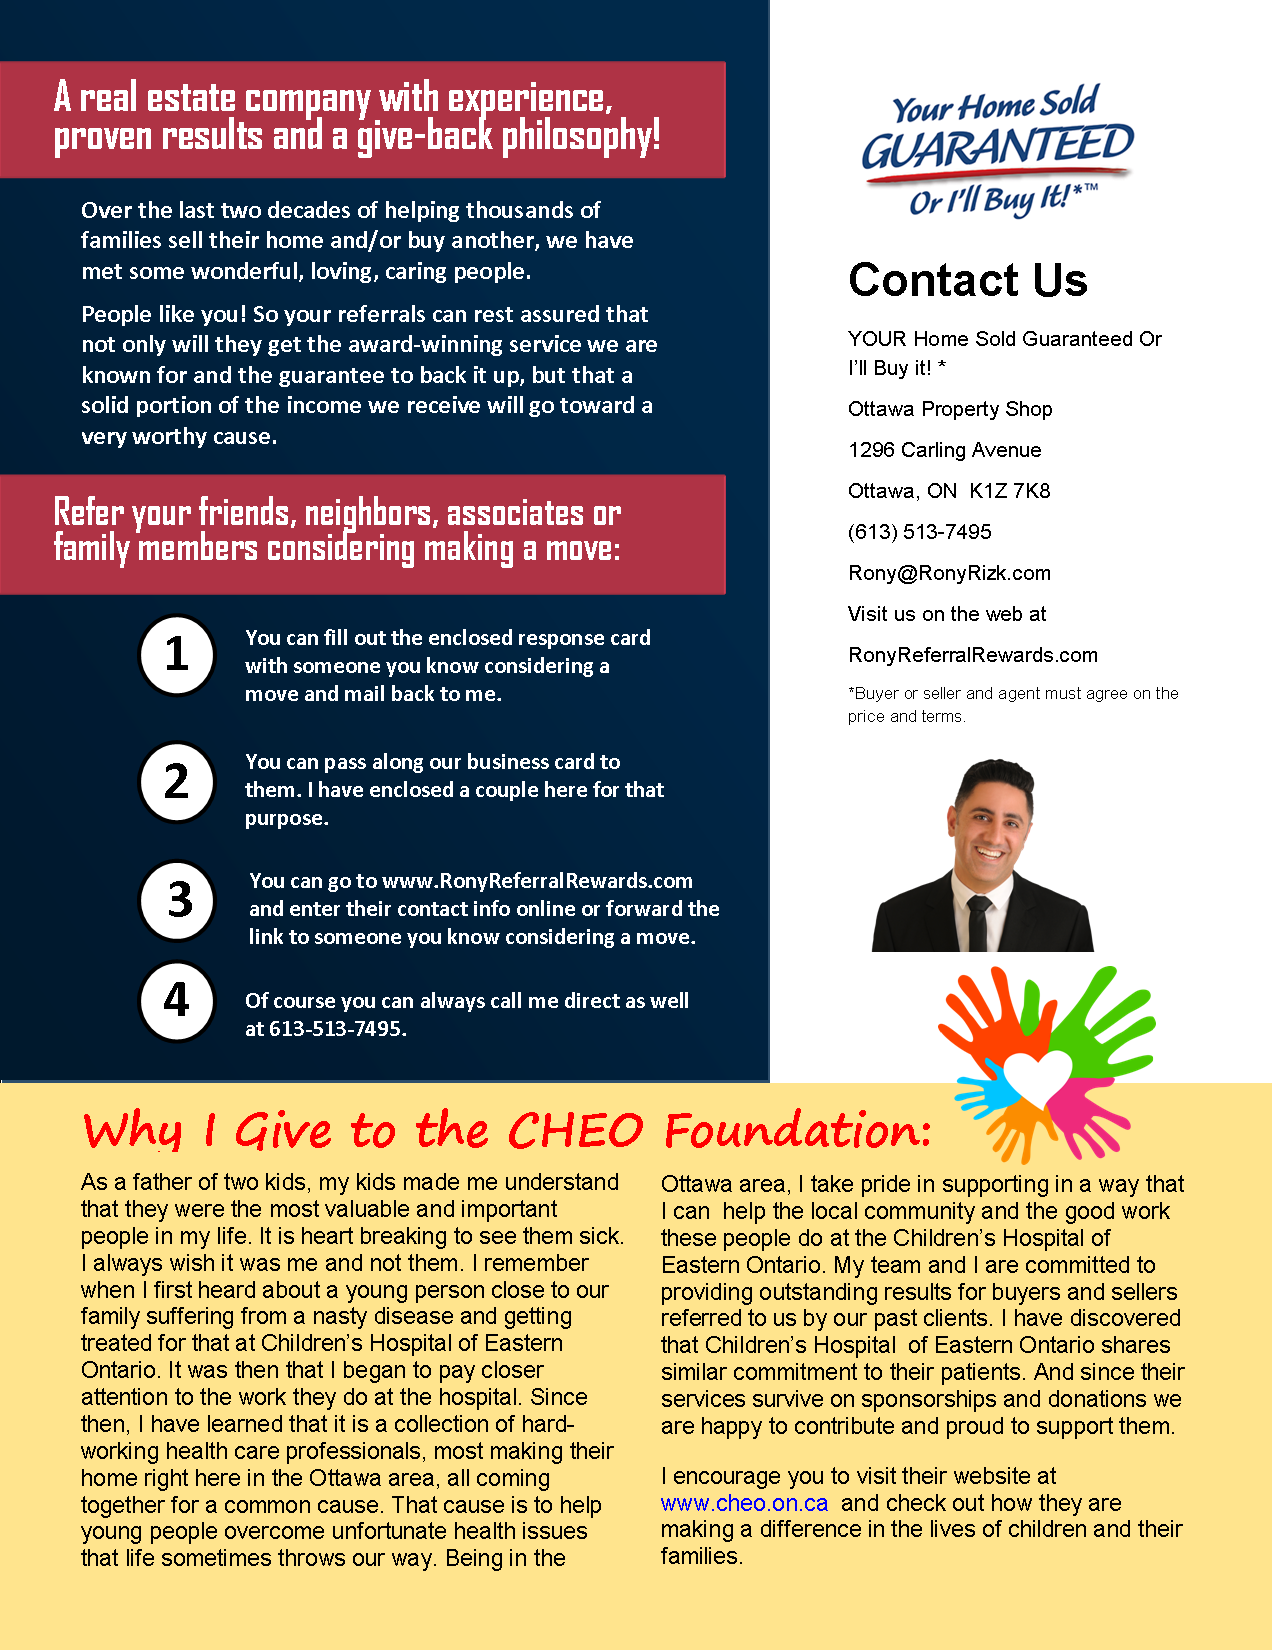 cp-platinum-referral-newsletter 4.png